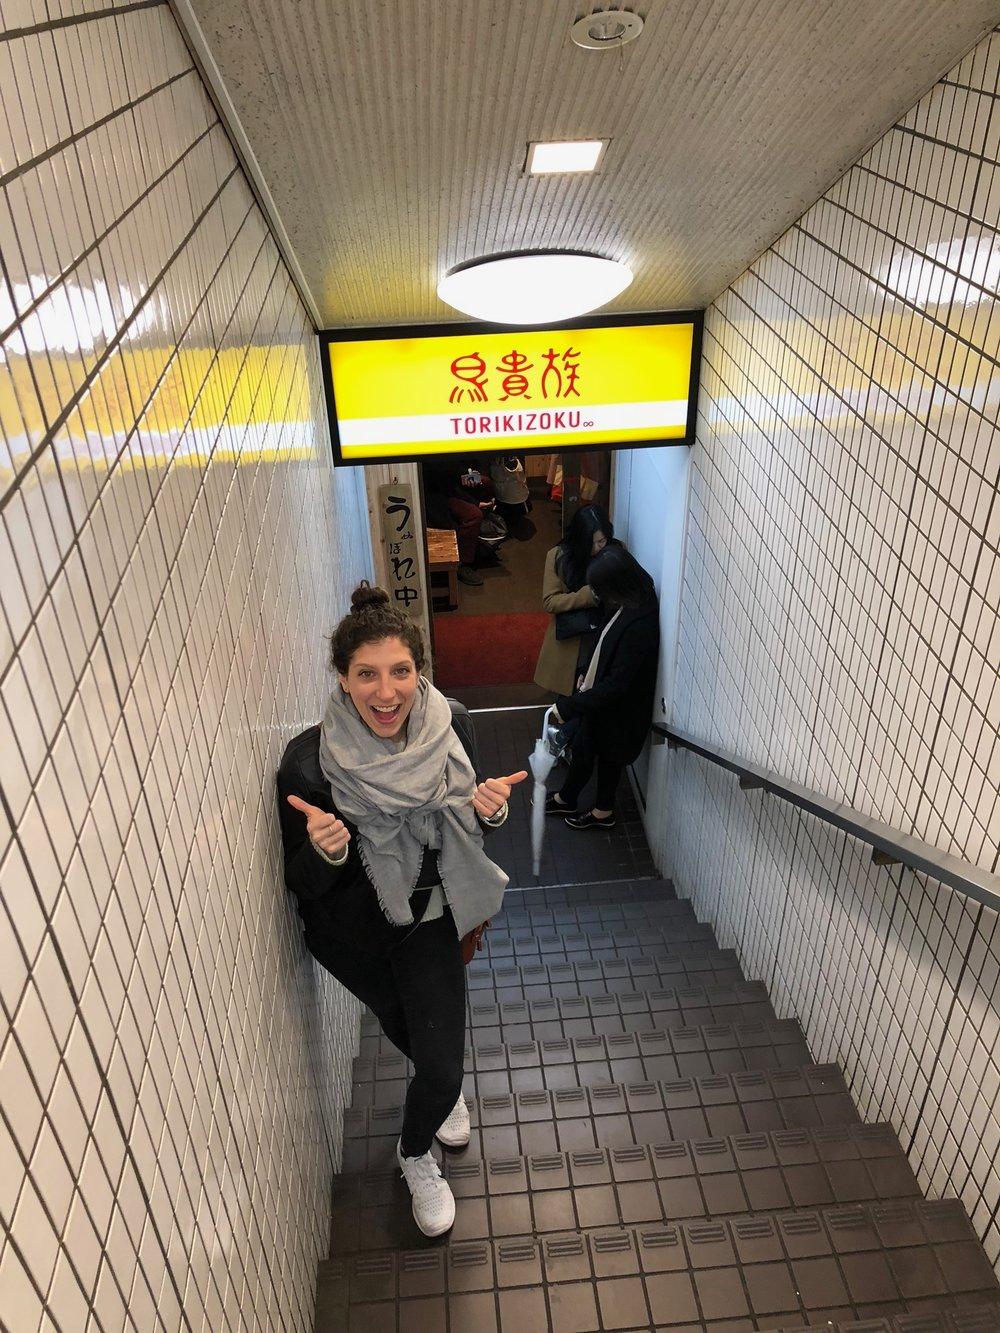 The same night we drank in some Golden Gai bars we had to figure out where to eat for our last night in Japan. I was in the mood for yakitori again so after a few missteps finding one, we landed on one underground. Alix poses on the steps down into the joint.